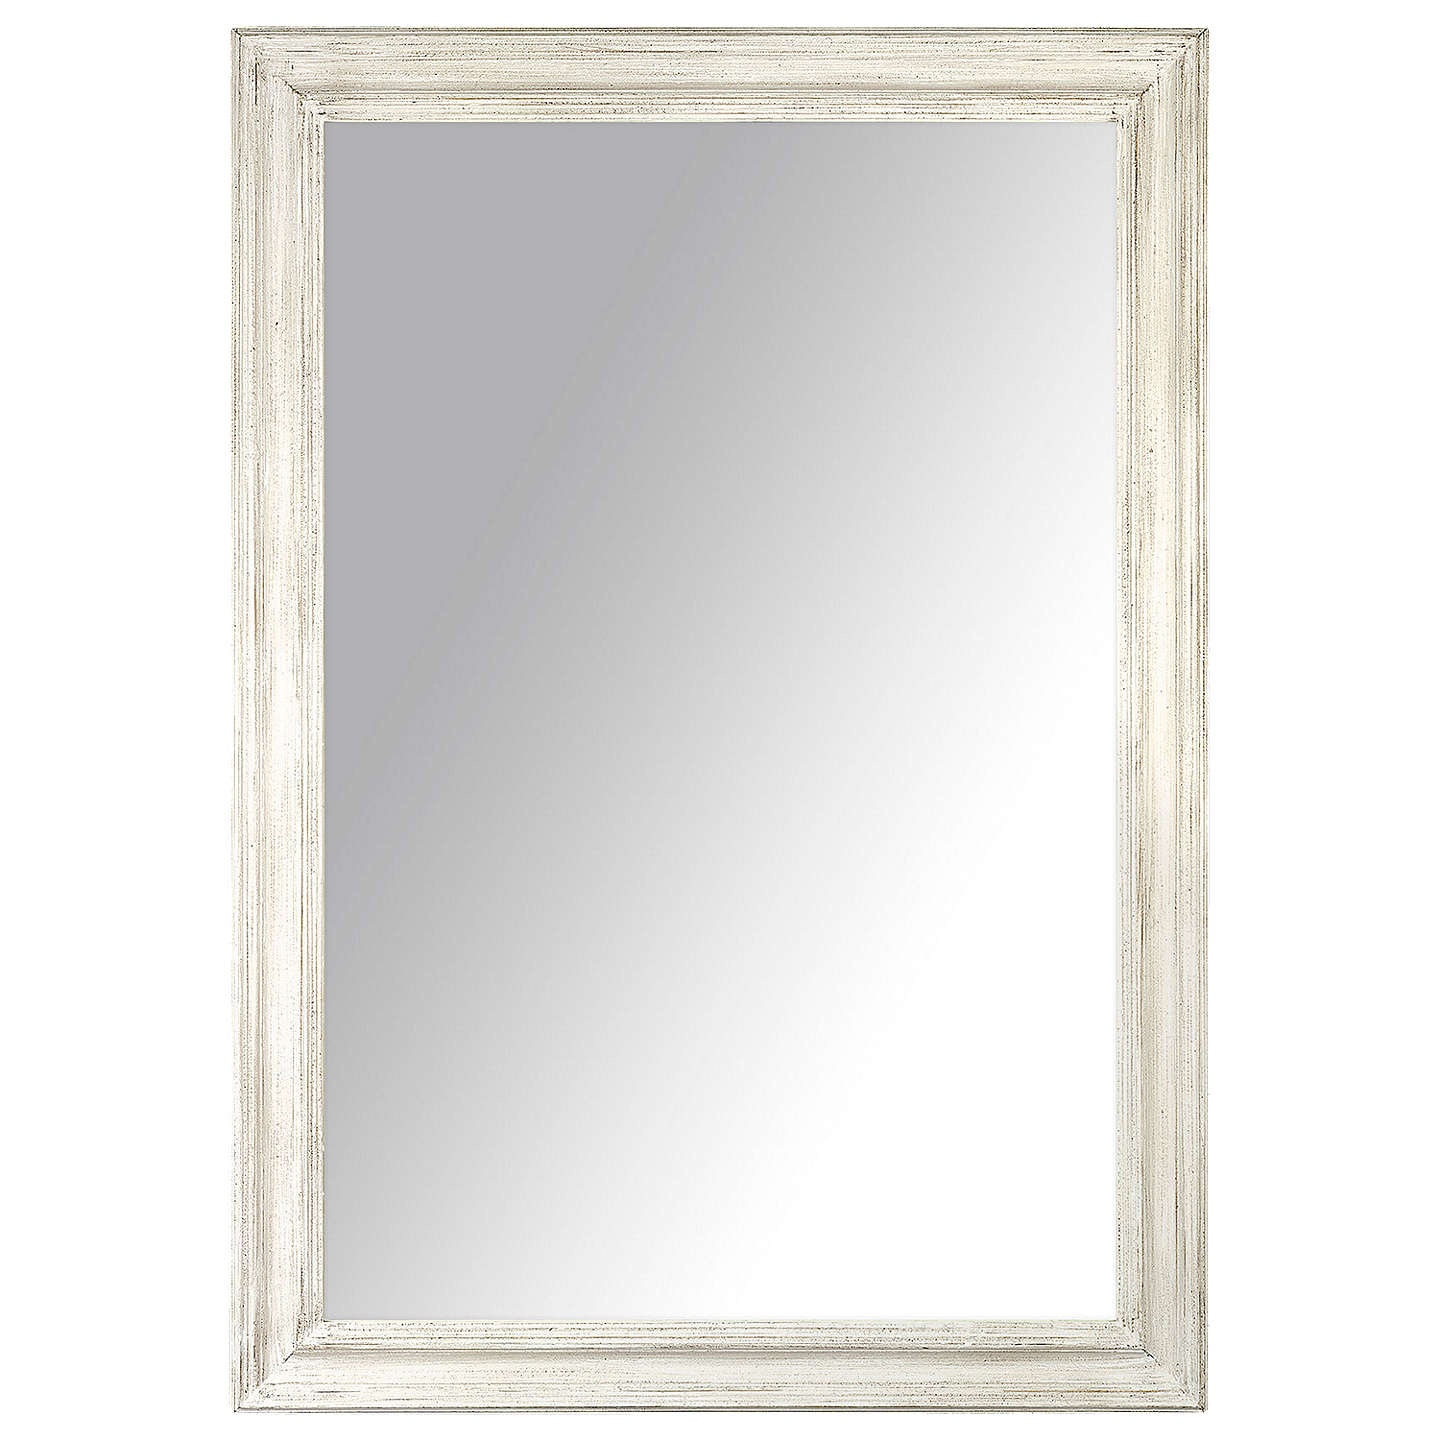 john lewis distressed mirror cream 102 x 72cm at john lewis. Black Bedroom Furniture Sets. Home Design Ideas